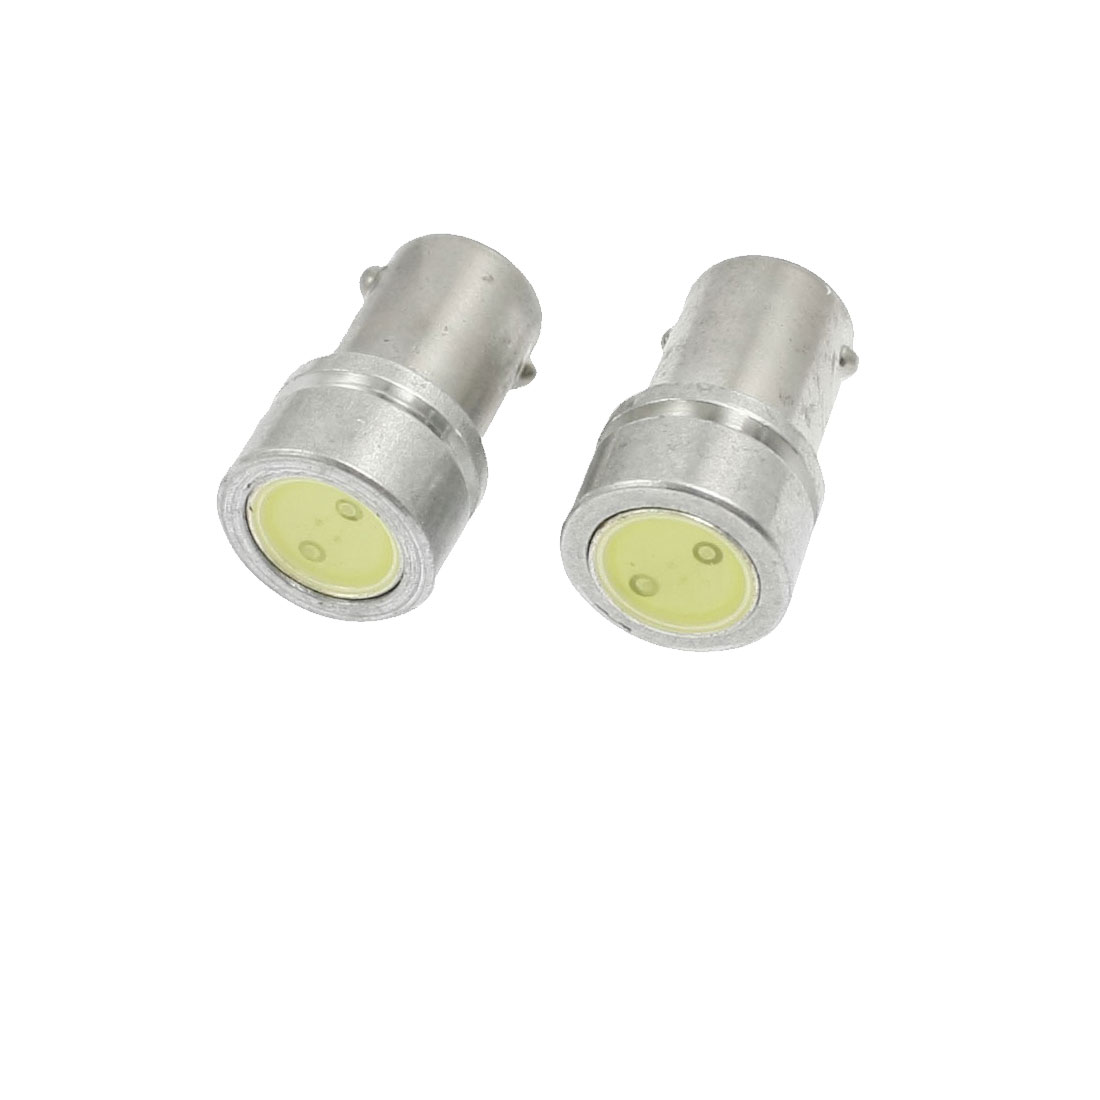 2 Pcs Car Auto Interior BA9S White LED Light Lamp Bulb 1W